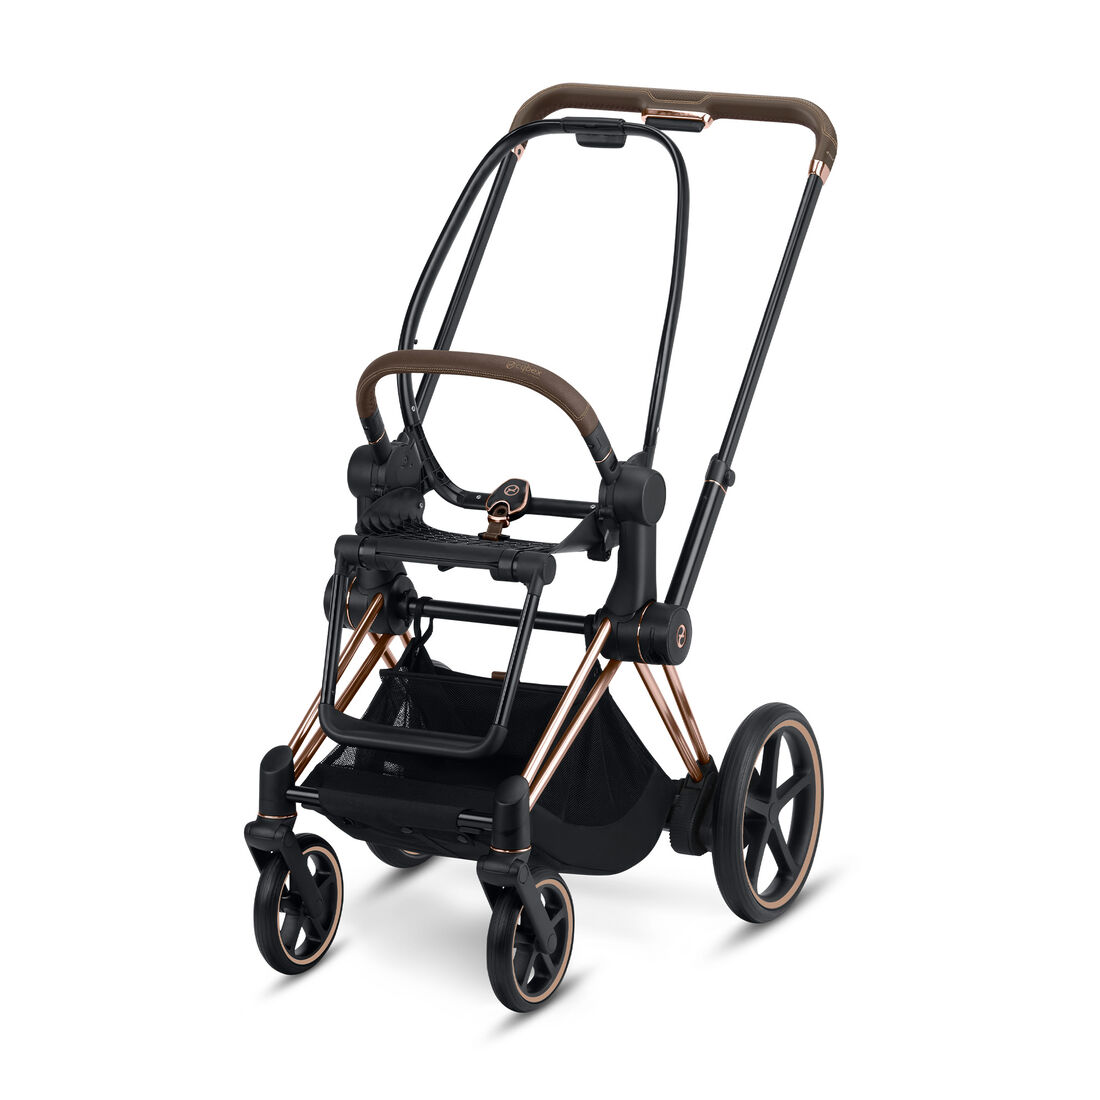 CYBEX Configure e-Priam Set: Frame, Lux Carry Cot, Cloud Z i-Size, Seat Pack in  large image number 5